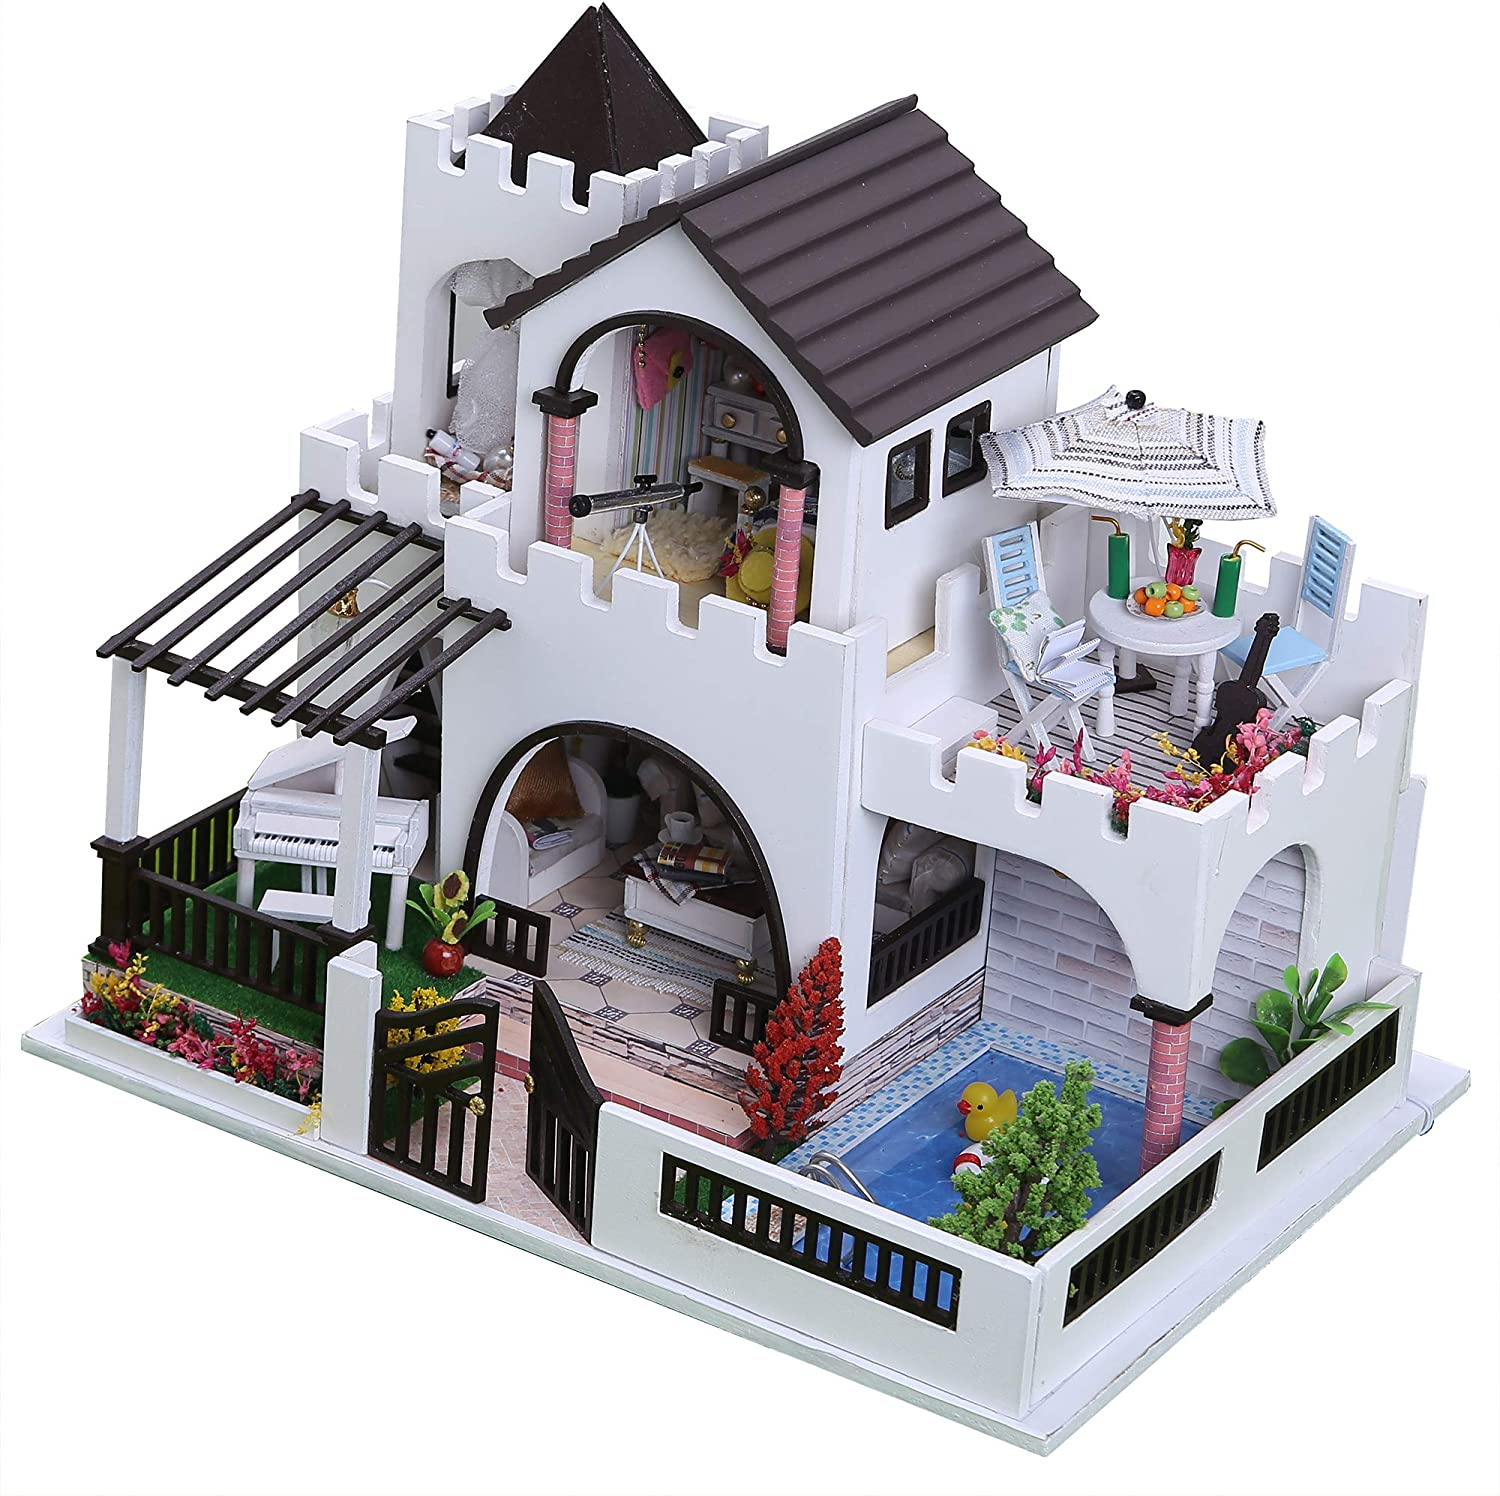 Flever Dollhouse Miniature DIY House Kit Manual Creative with Furniture and Cover for Romantic Artwork Gift (Dreamlike Castle)